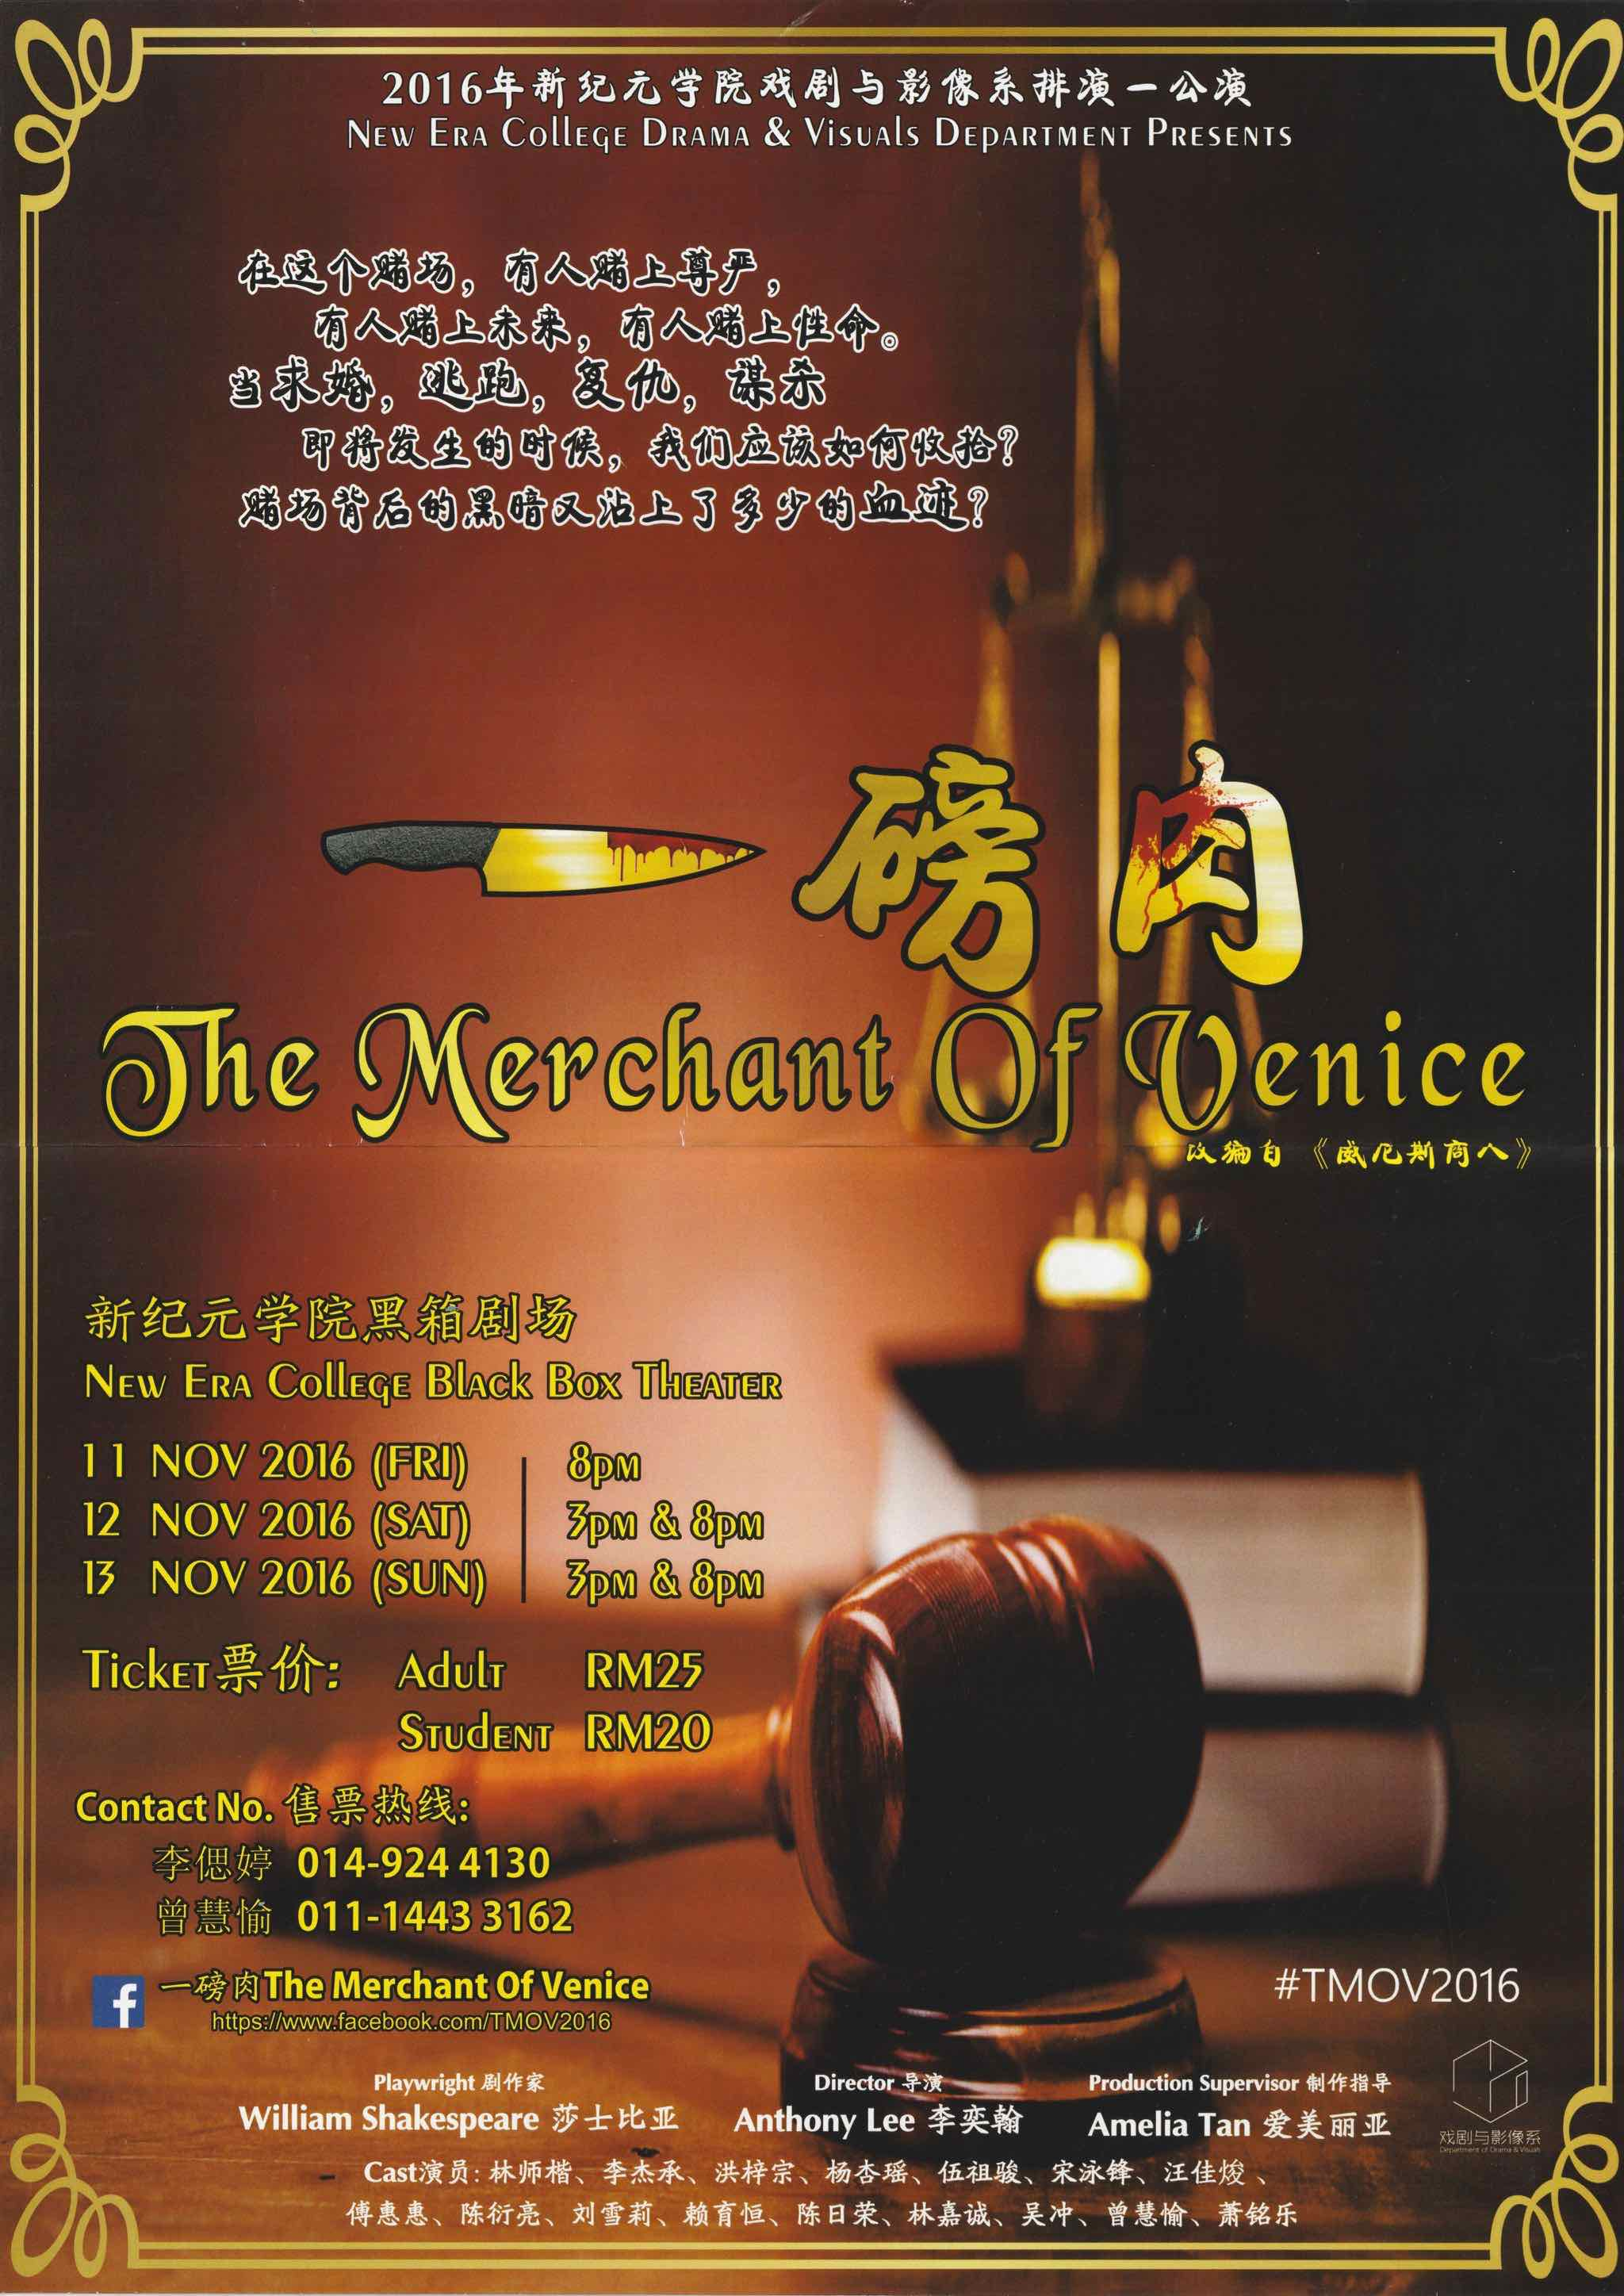 2016 The Merchant Of Venice Poster